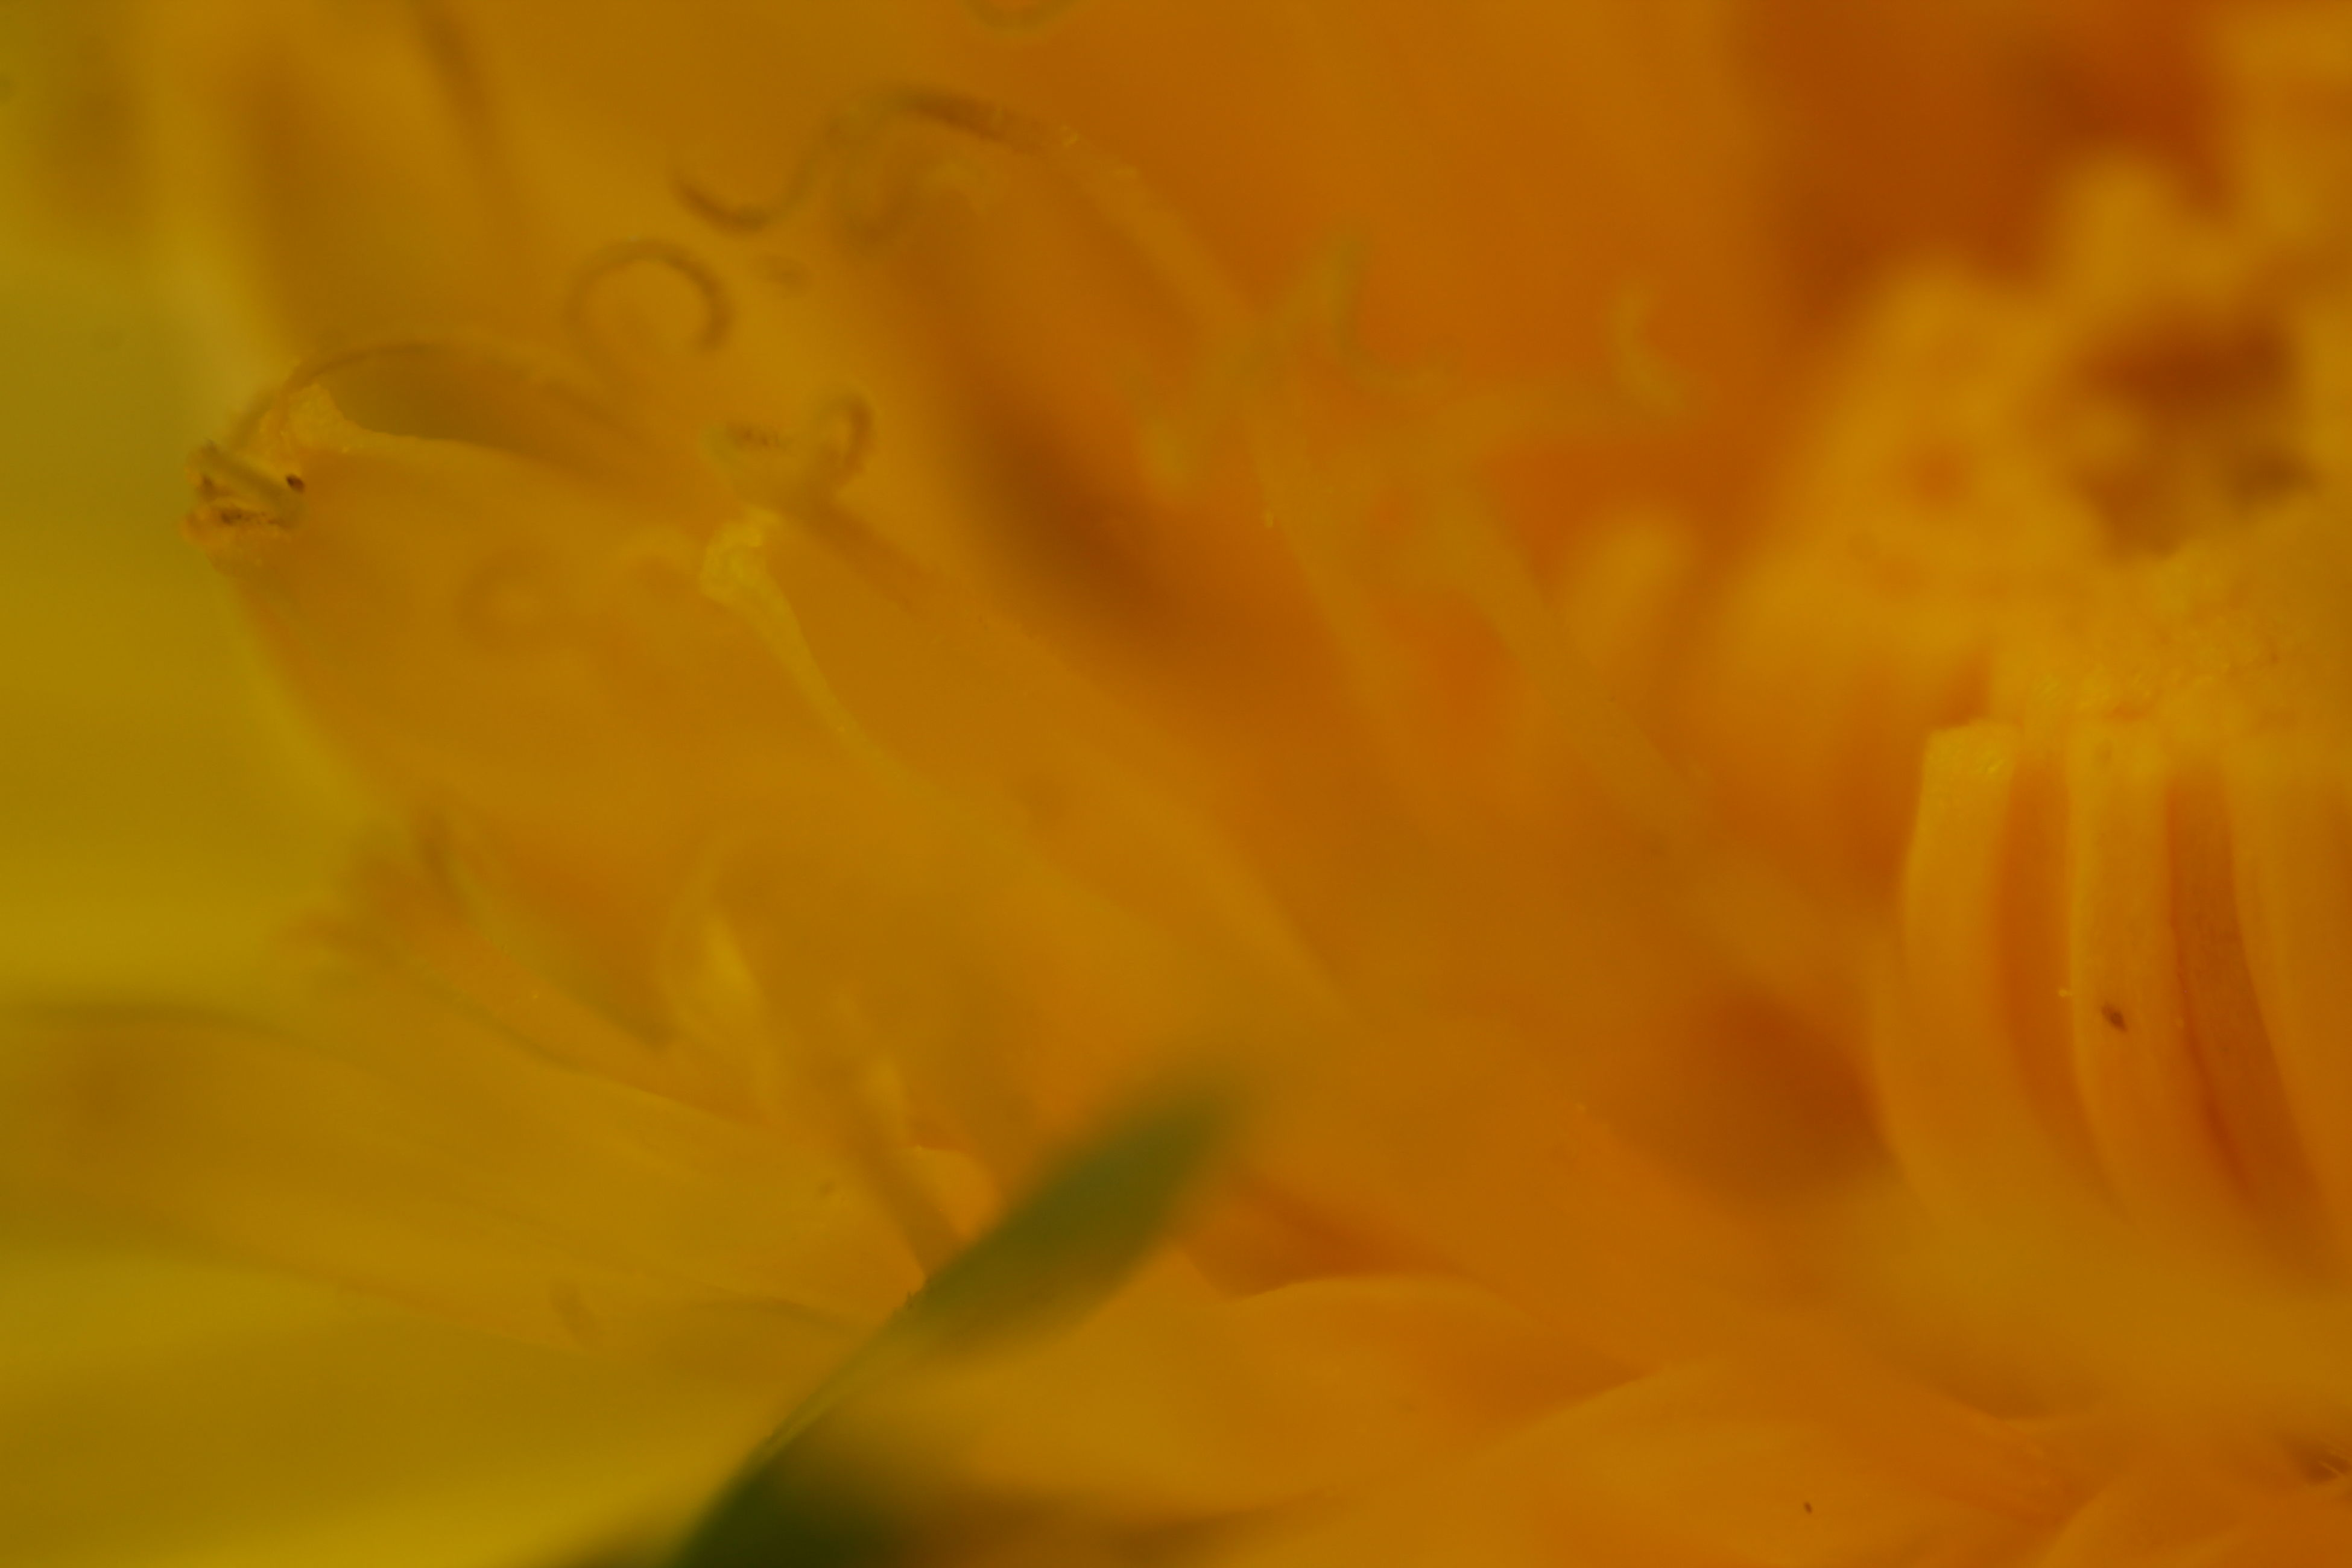 flower, petal, yellow, freshness, fragility, flower head, close-up, beauty in nature, full frame, growth, nature, selective focus, single flower, backgrounds, extreme close-up, plant, macro, blooming, orange color, pollen